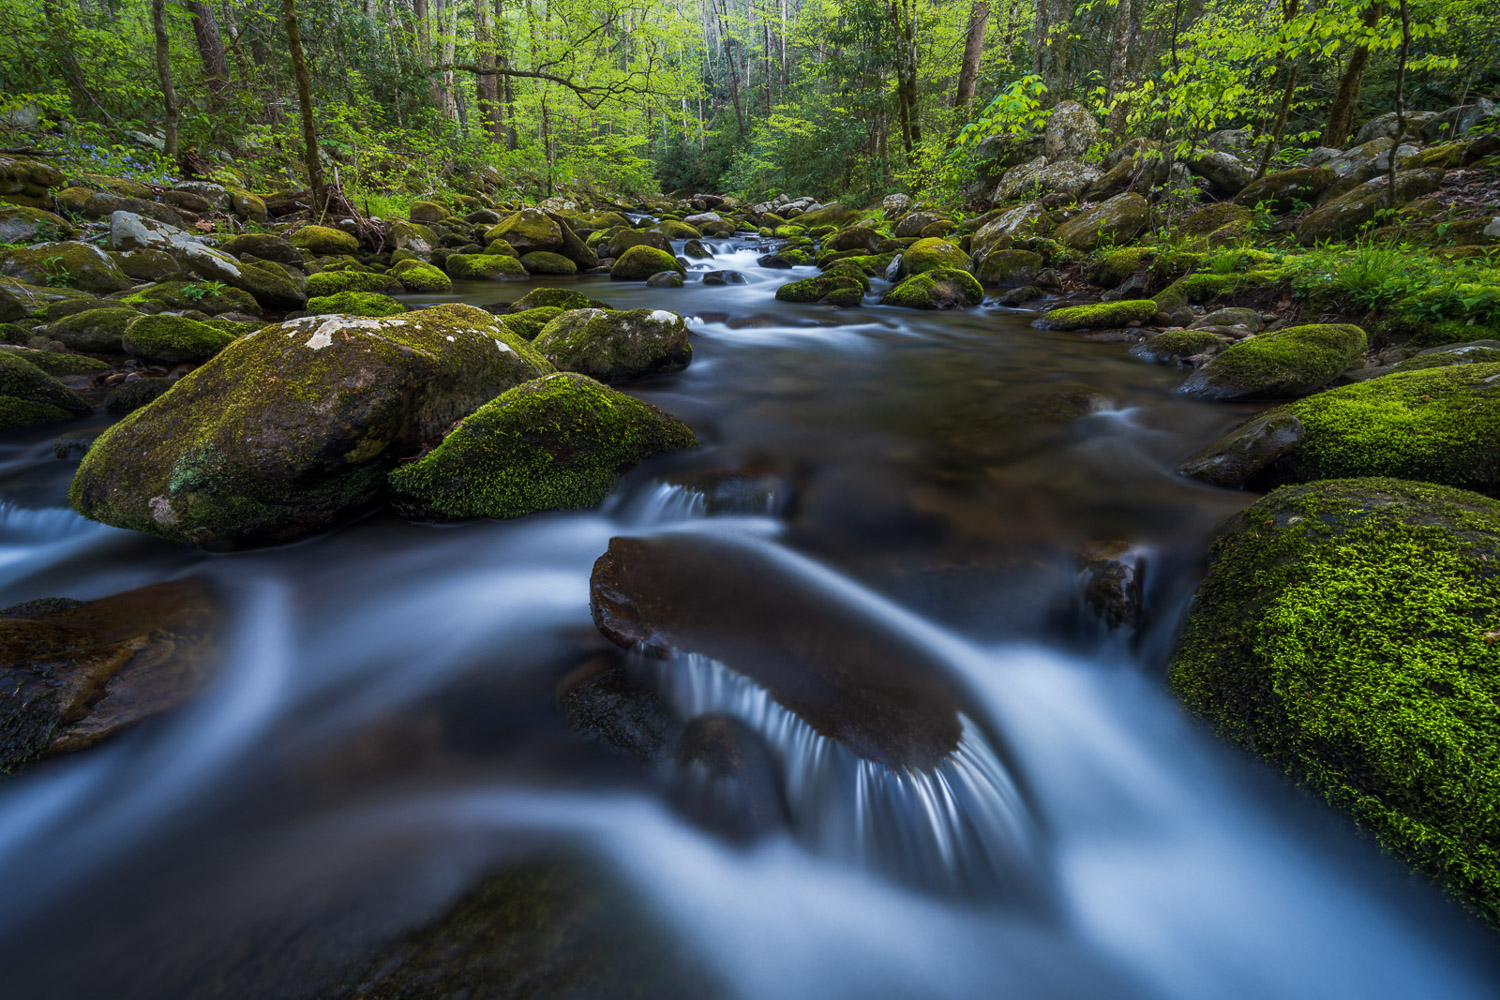 Moss covered boulders and spring foliage along the Roaring Fork River.